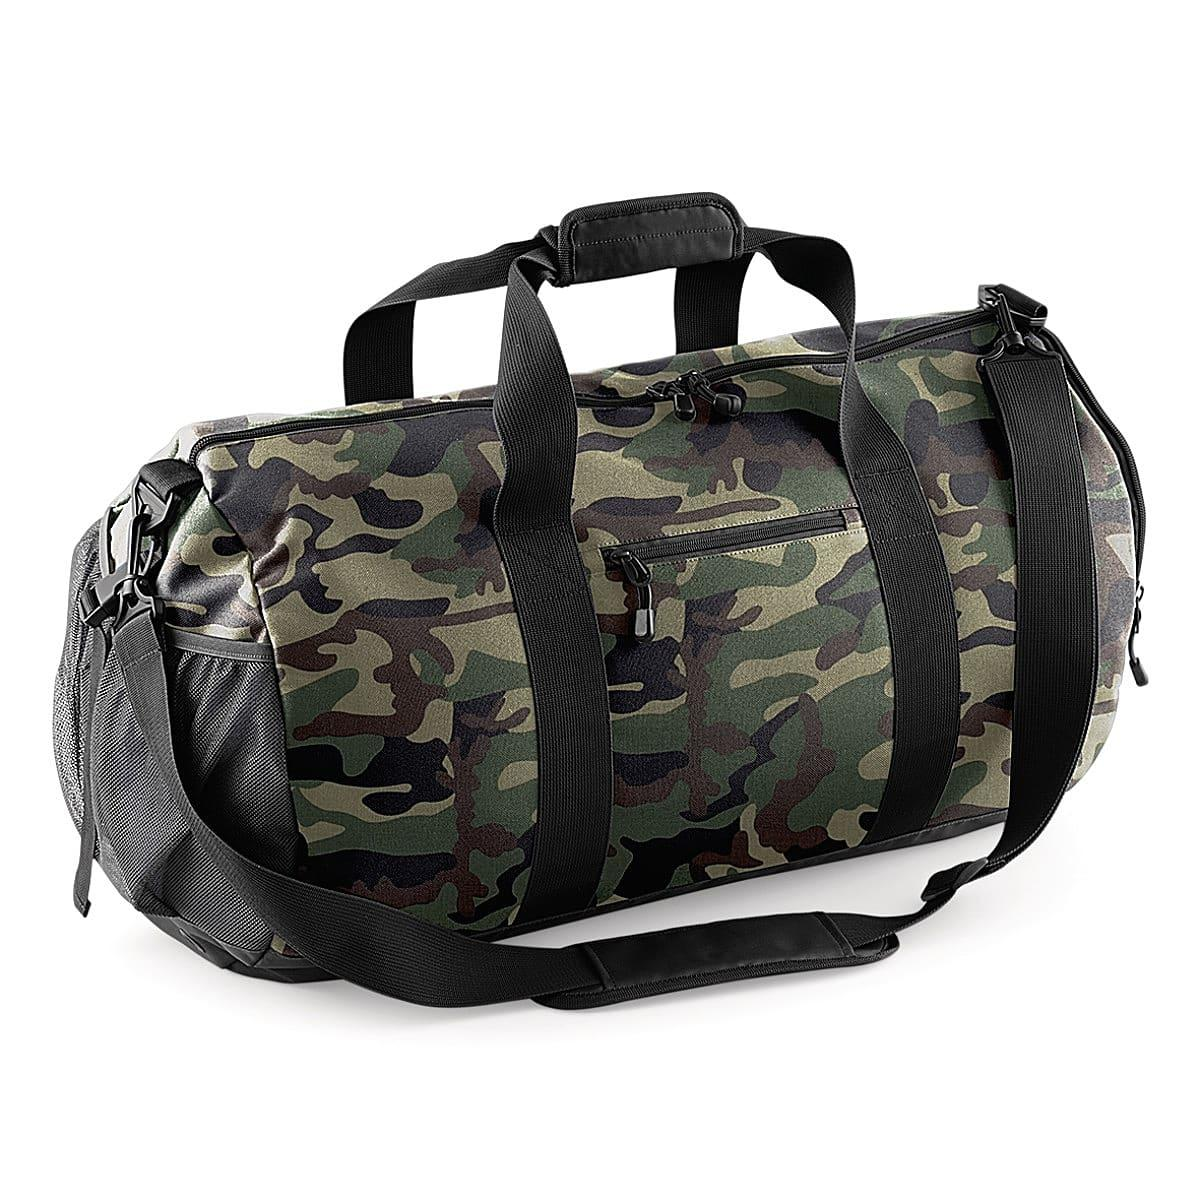 Bagbase Athleisure Kit Bag in Jungle Camo (Product Code: BG546)